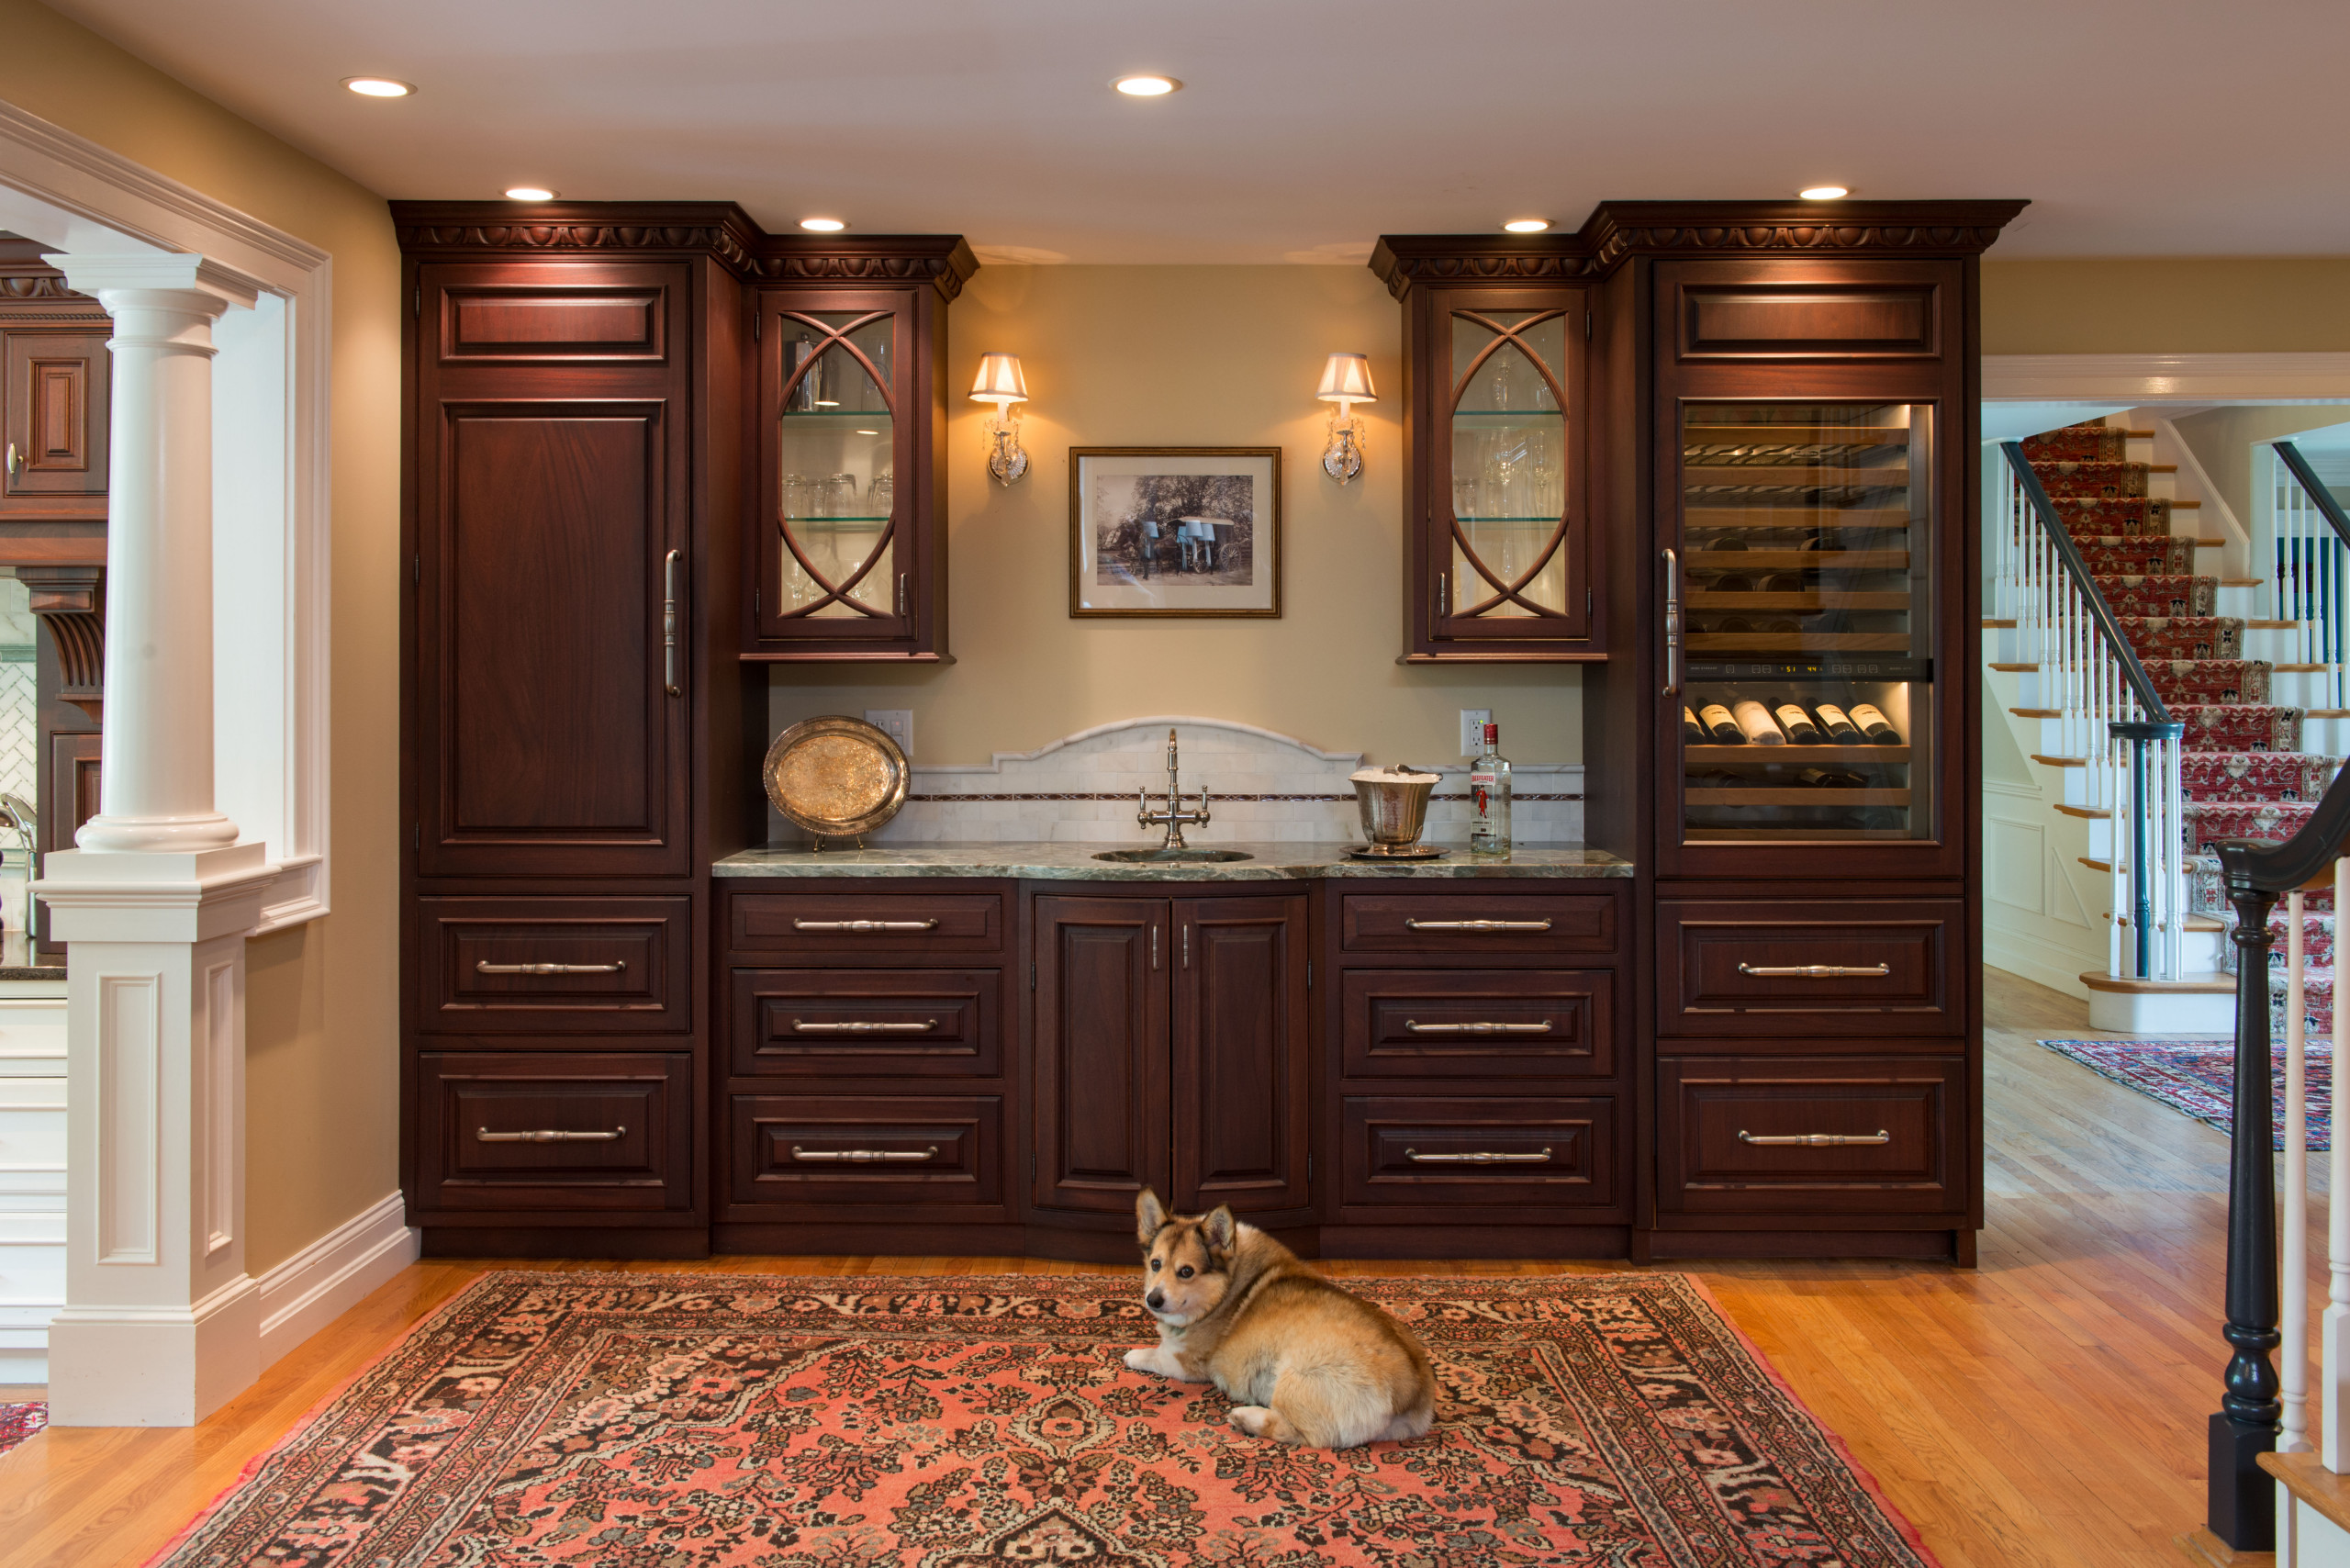 """Central Wine"" with arched accents Delicious Kitchens & Interiors, LLC"